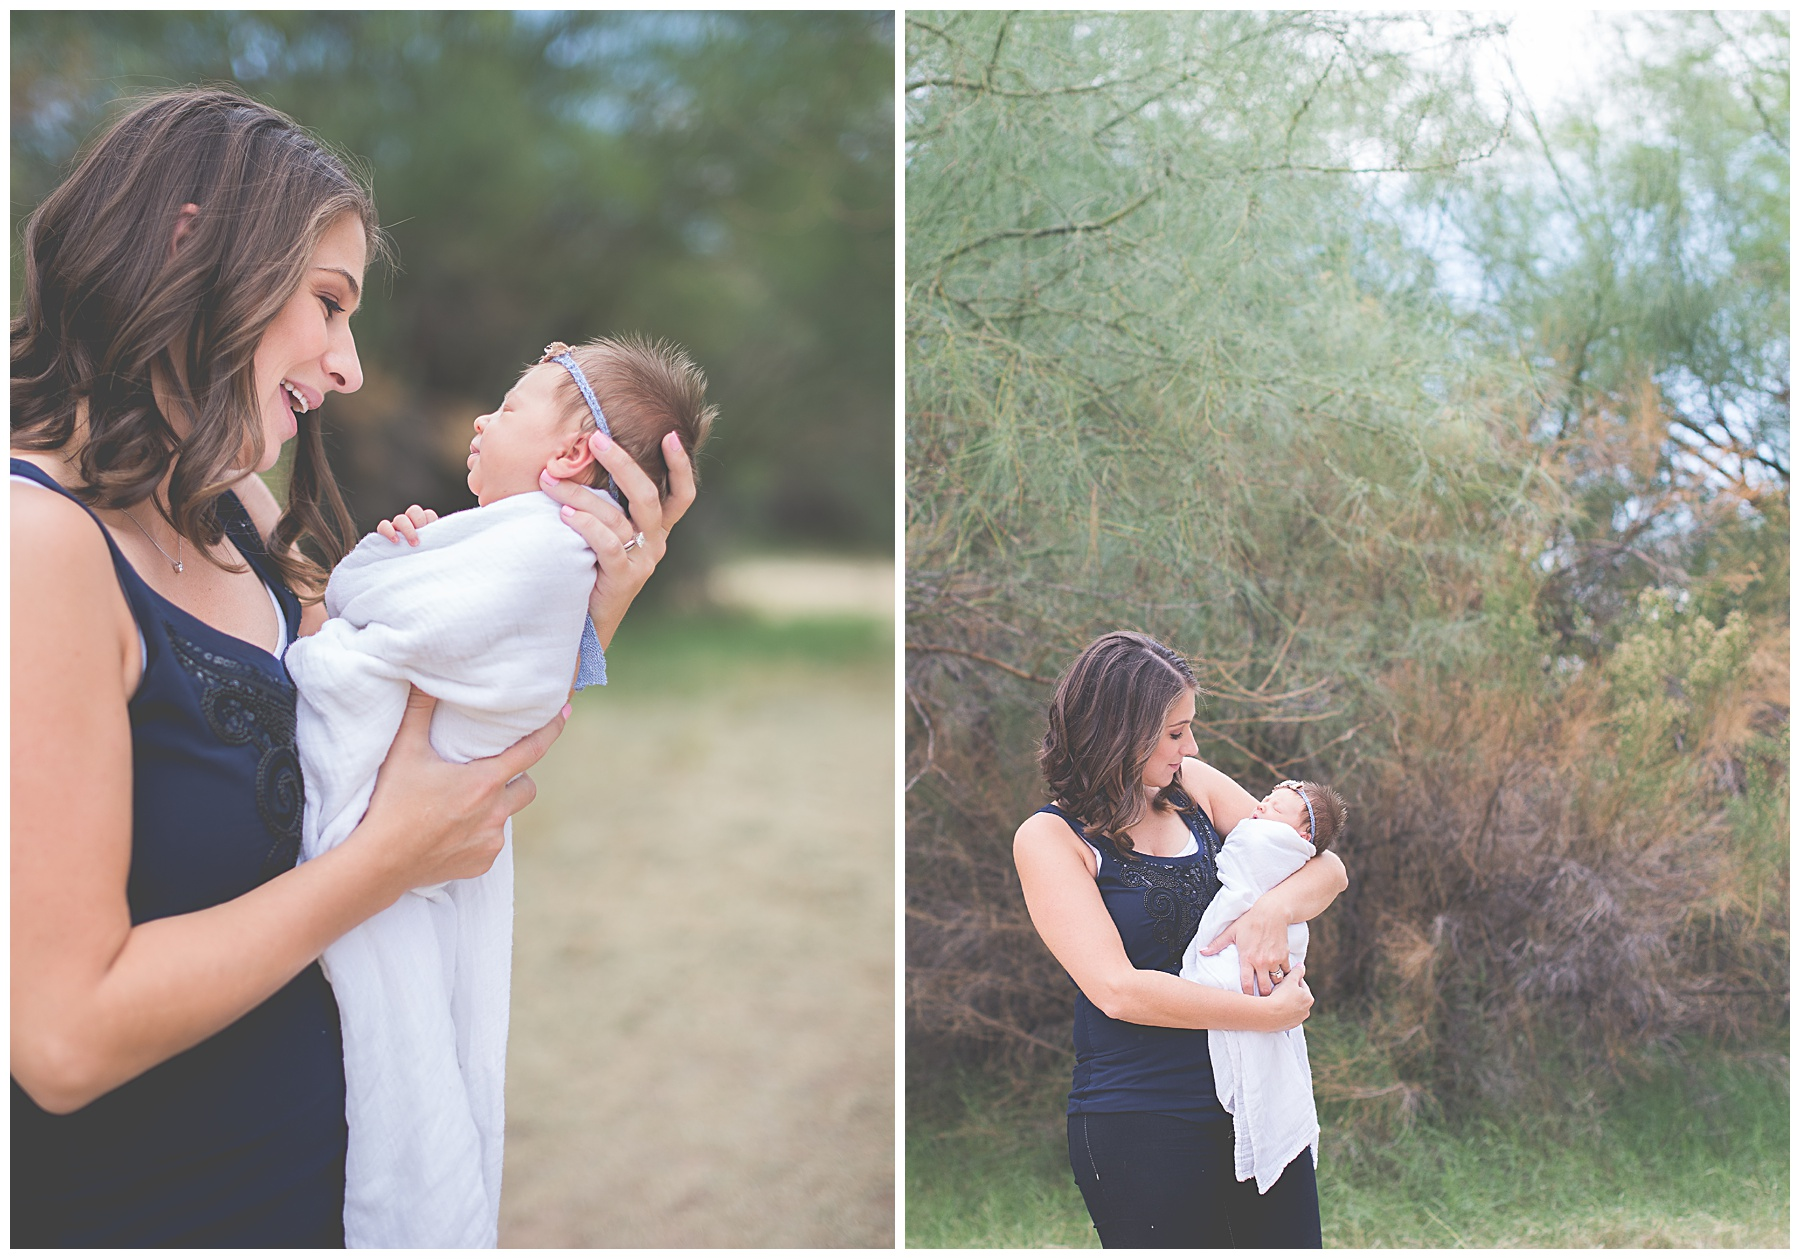 Phoenix Outdoor Lifestyle Newborn session | Sweetlife Photography